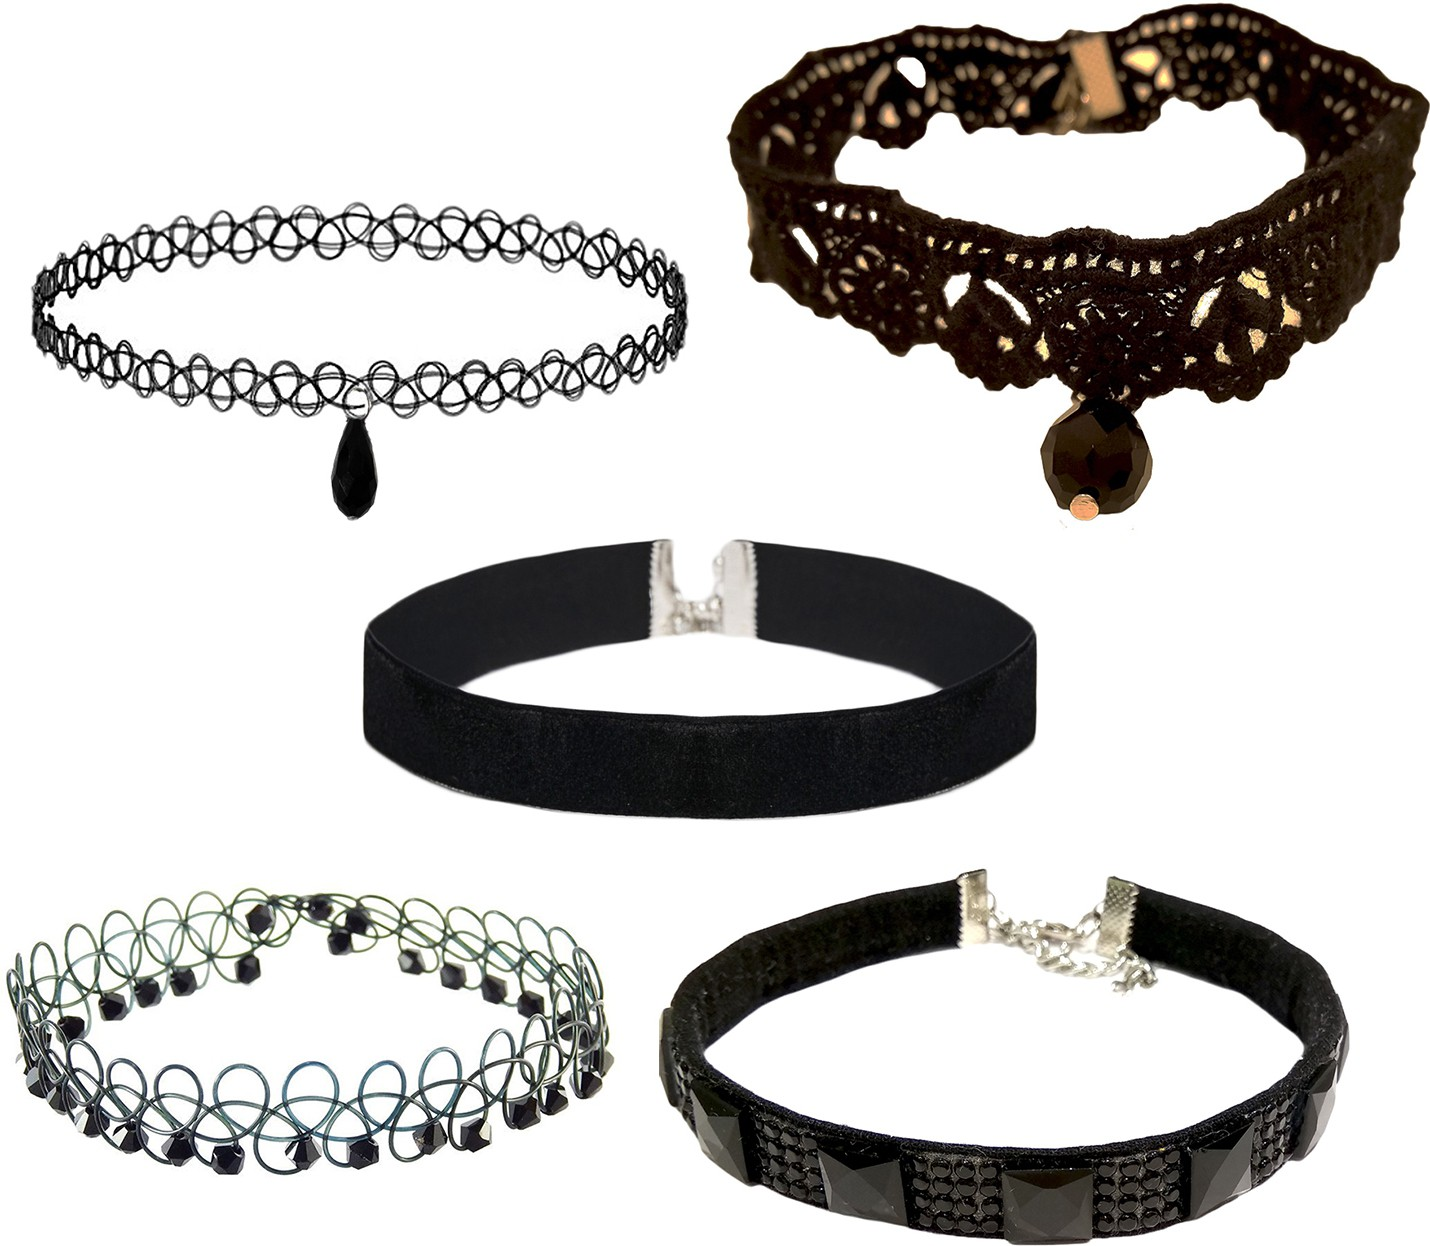 Deals - Delhi - Choker Necklaces <br> Be in Trend<br> Category - jewellery<br> Business - Flipkart.com